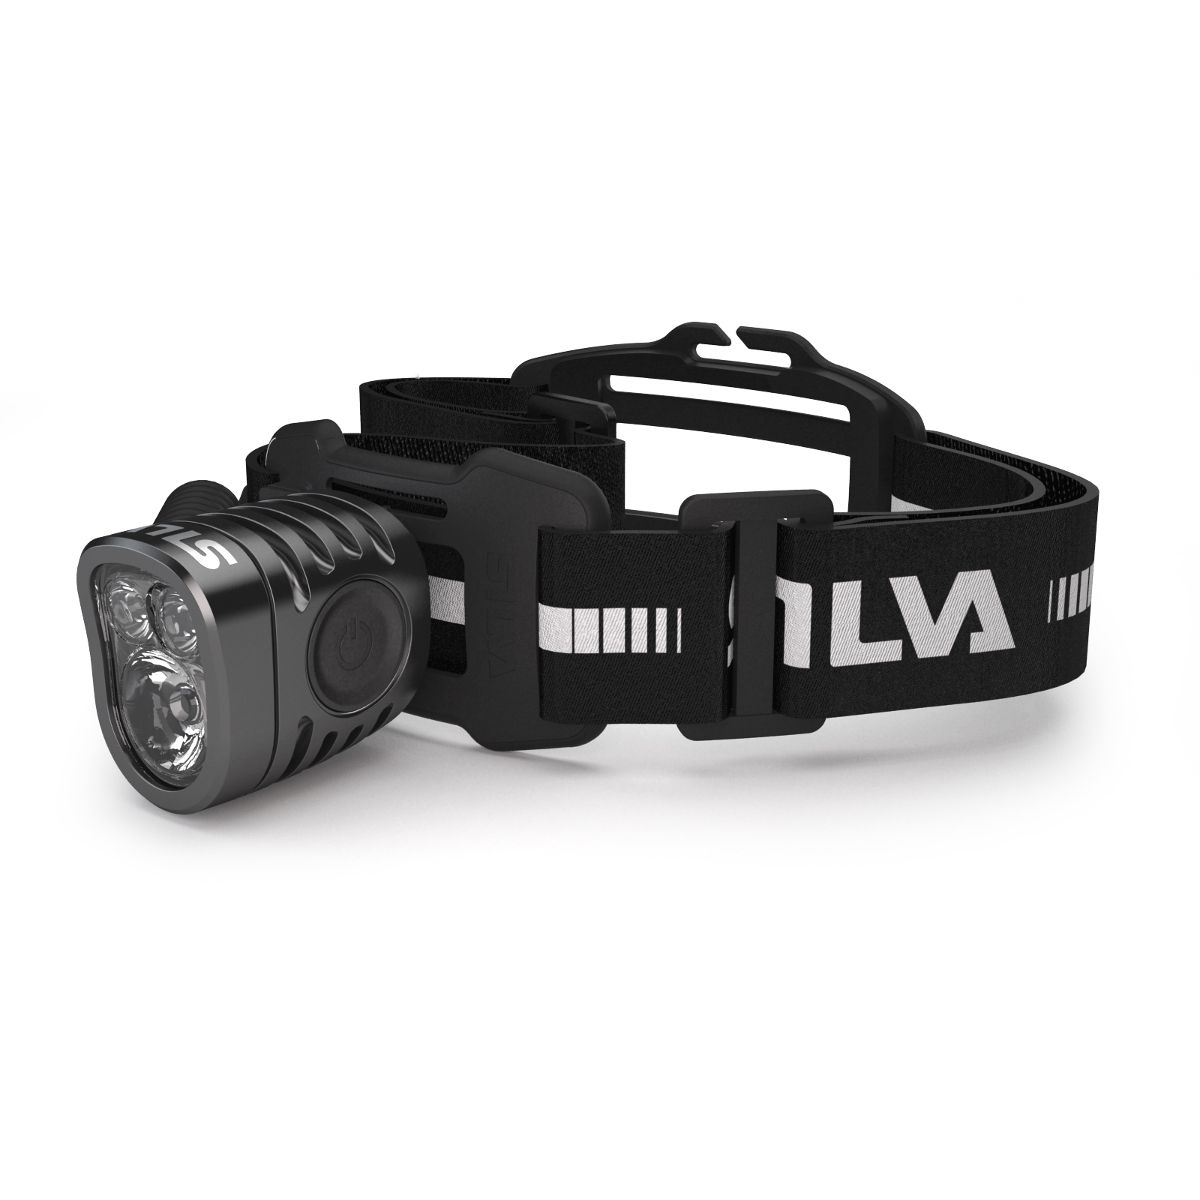 Exceed 2XT battery-powered headlamp 1500 lm with boost